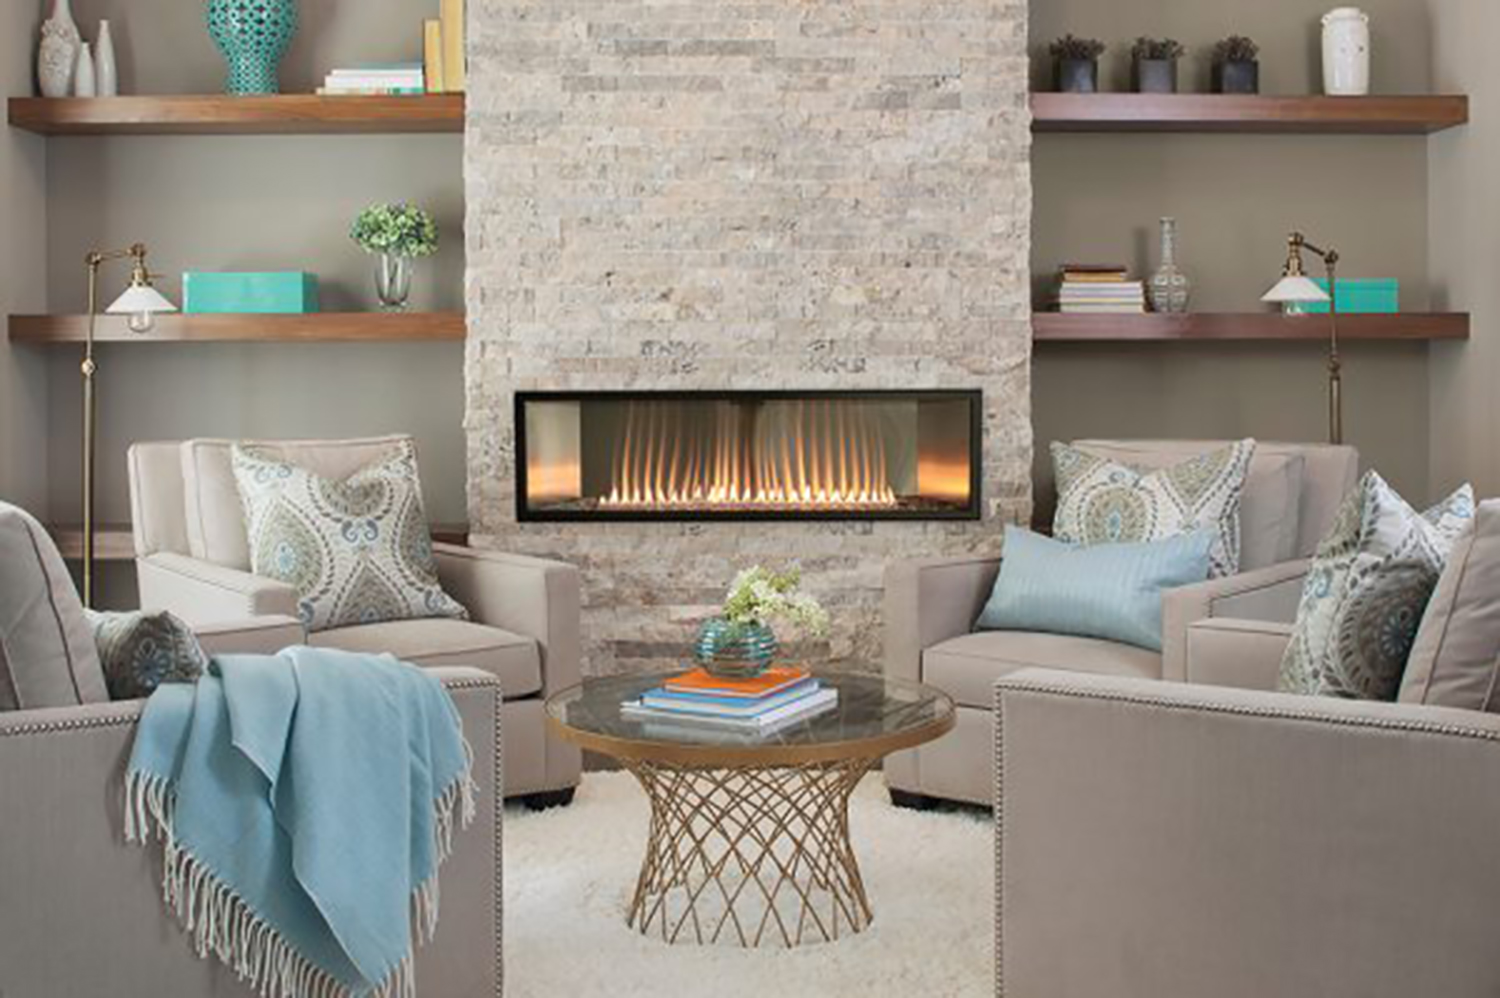 LINEAR VENTLESS FIREPLACE